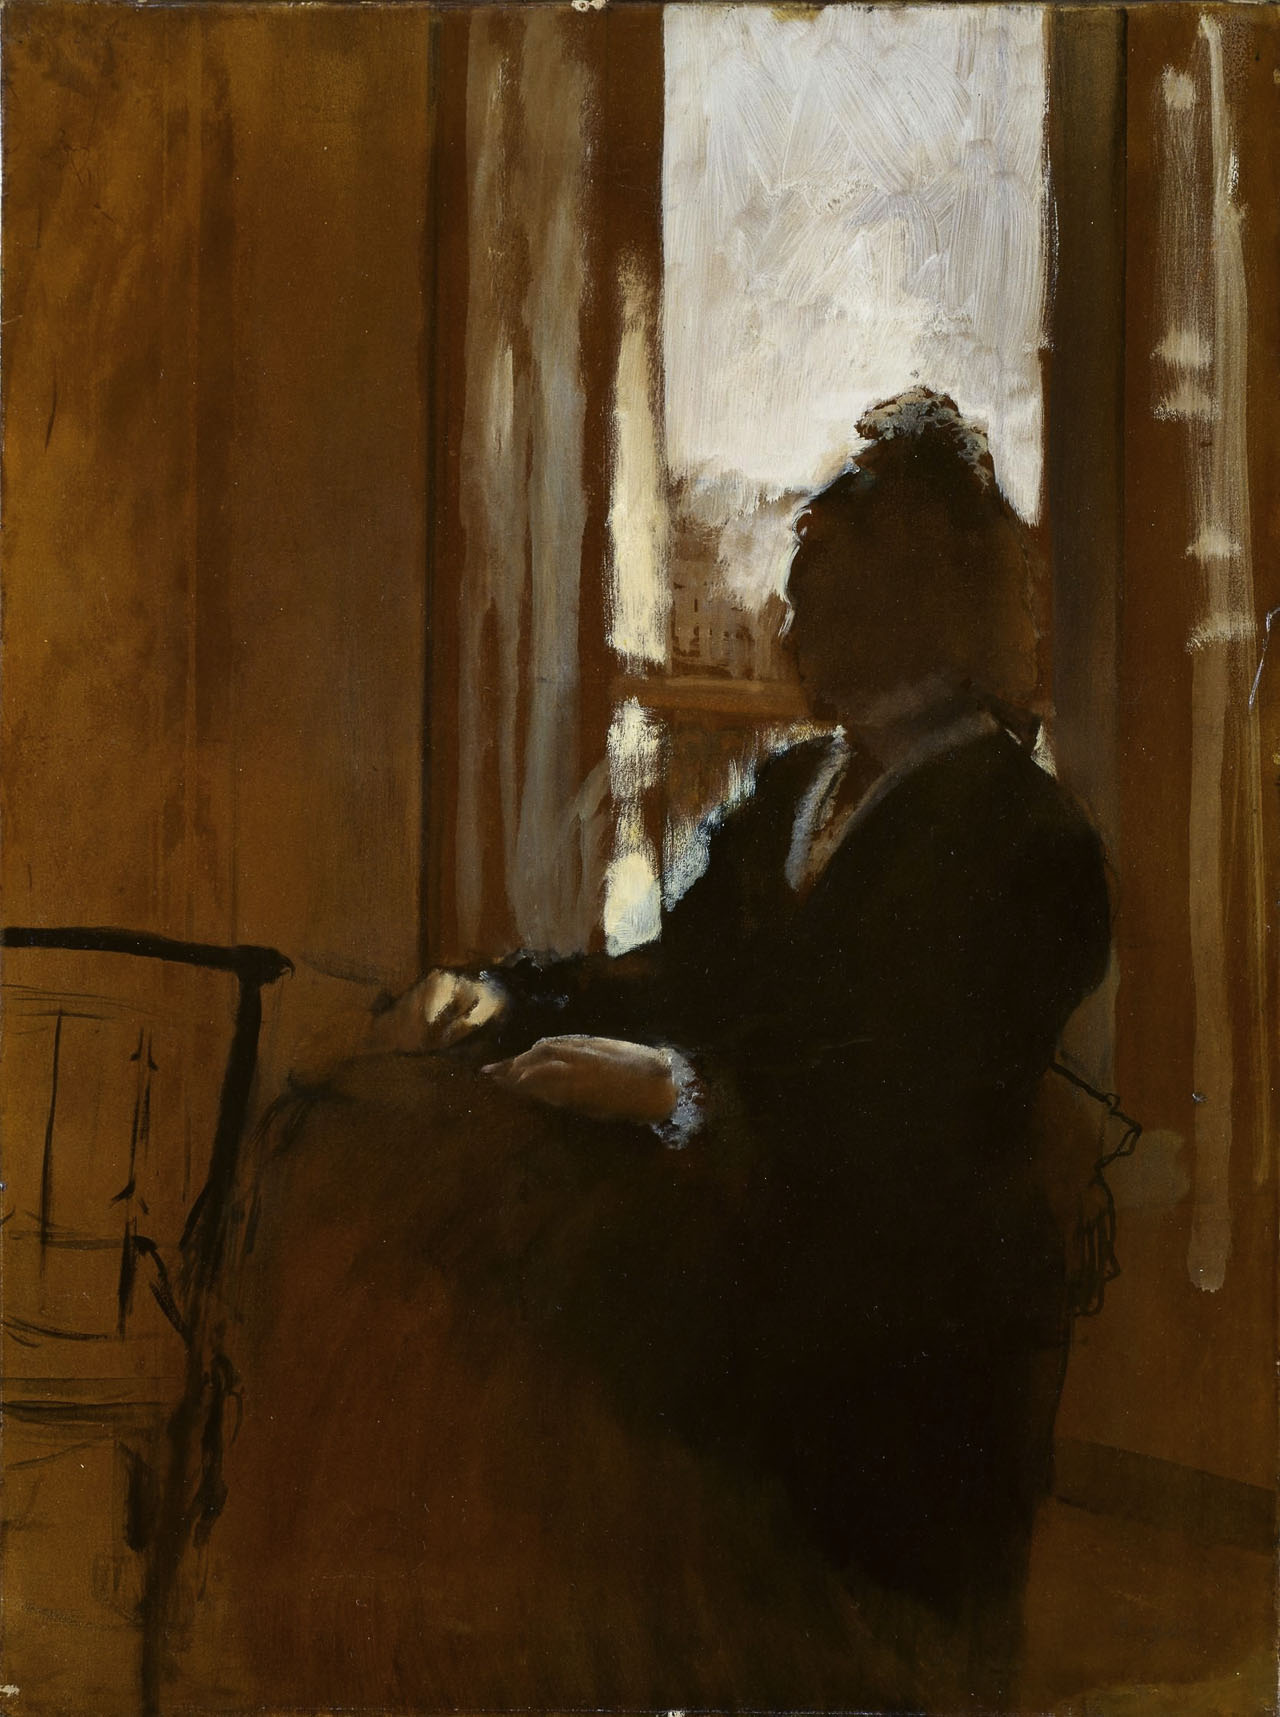 Edgar Degas: Woman at a Window, Courtauld P.1932.SC.88